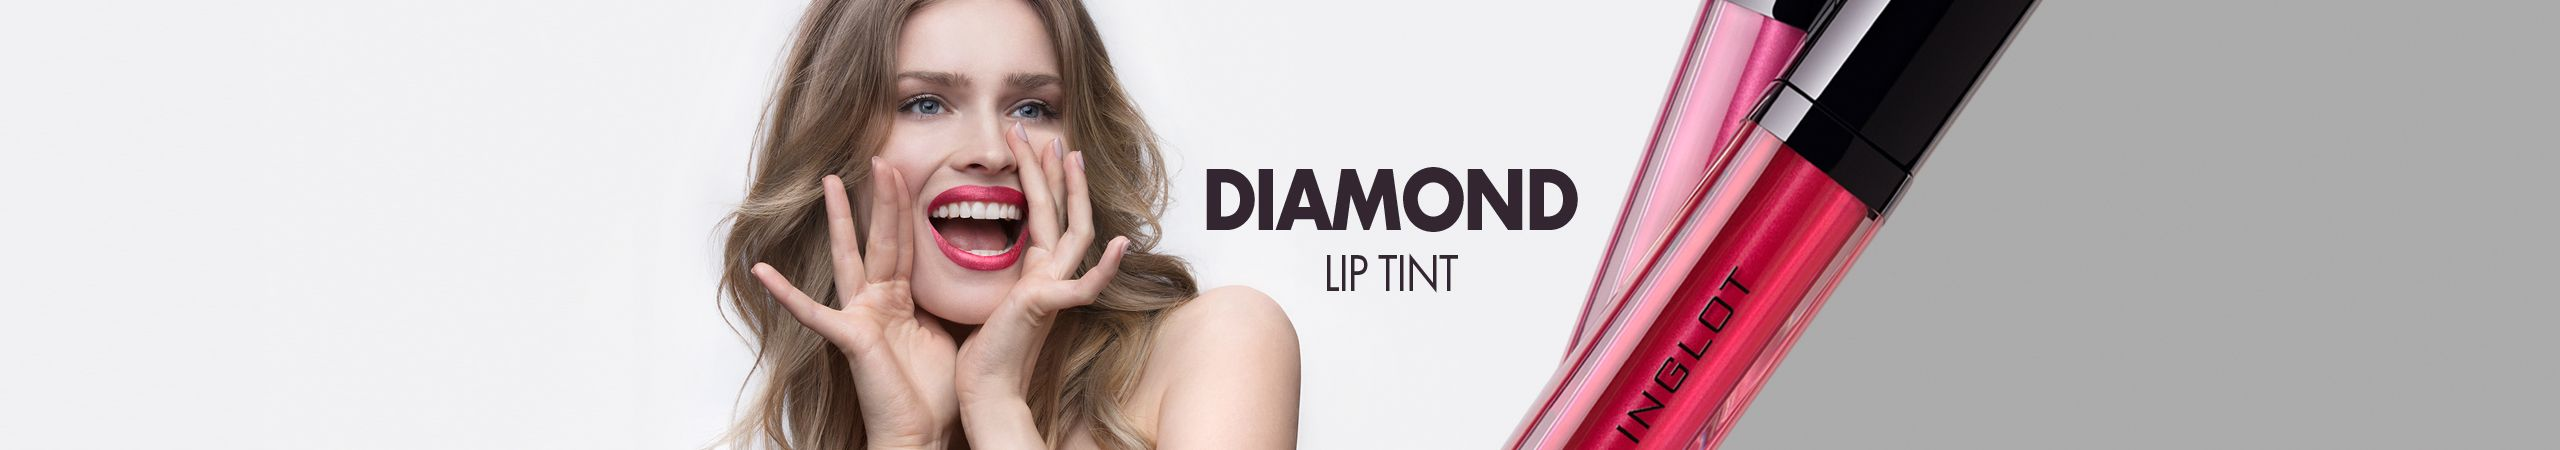 1311205diamond_lip_tint-compressor